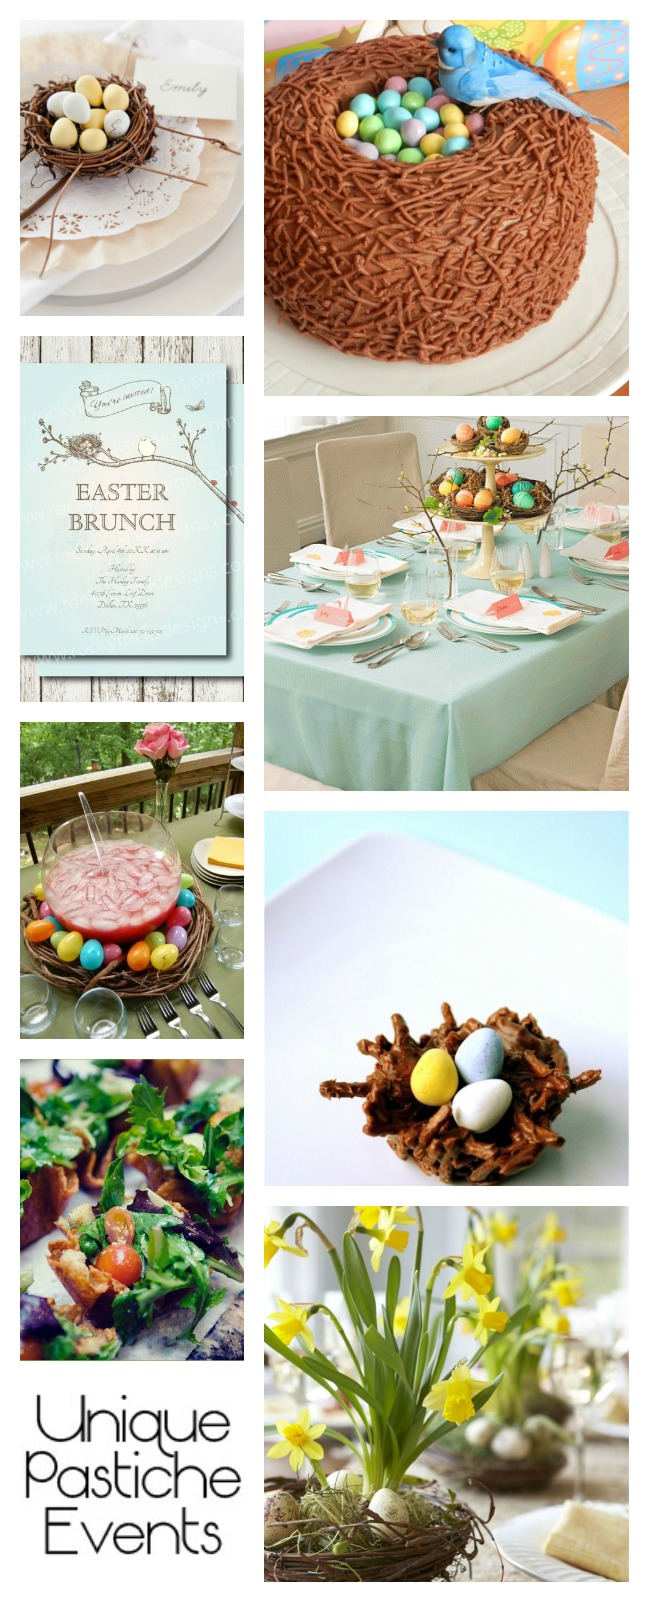 Easter Morning Brunch Ideas by Unique Pastiche Events